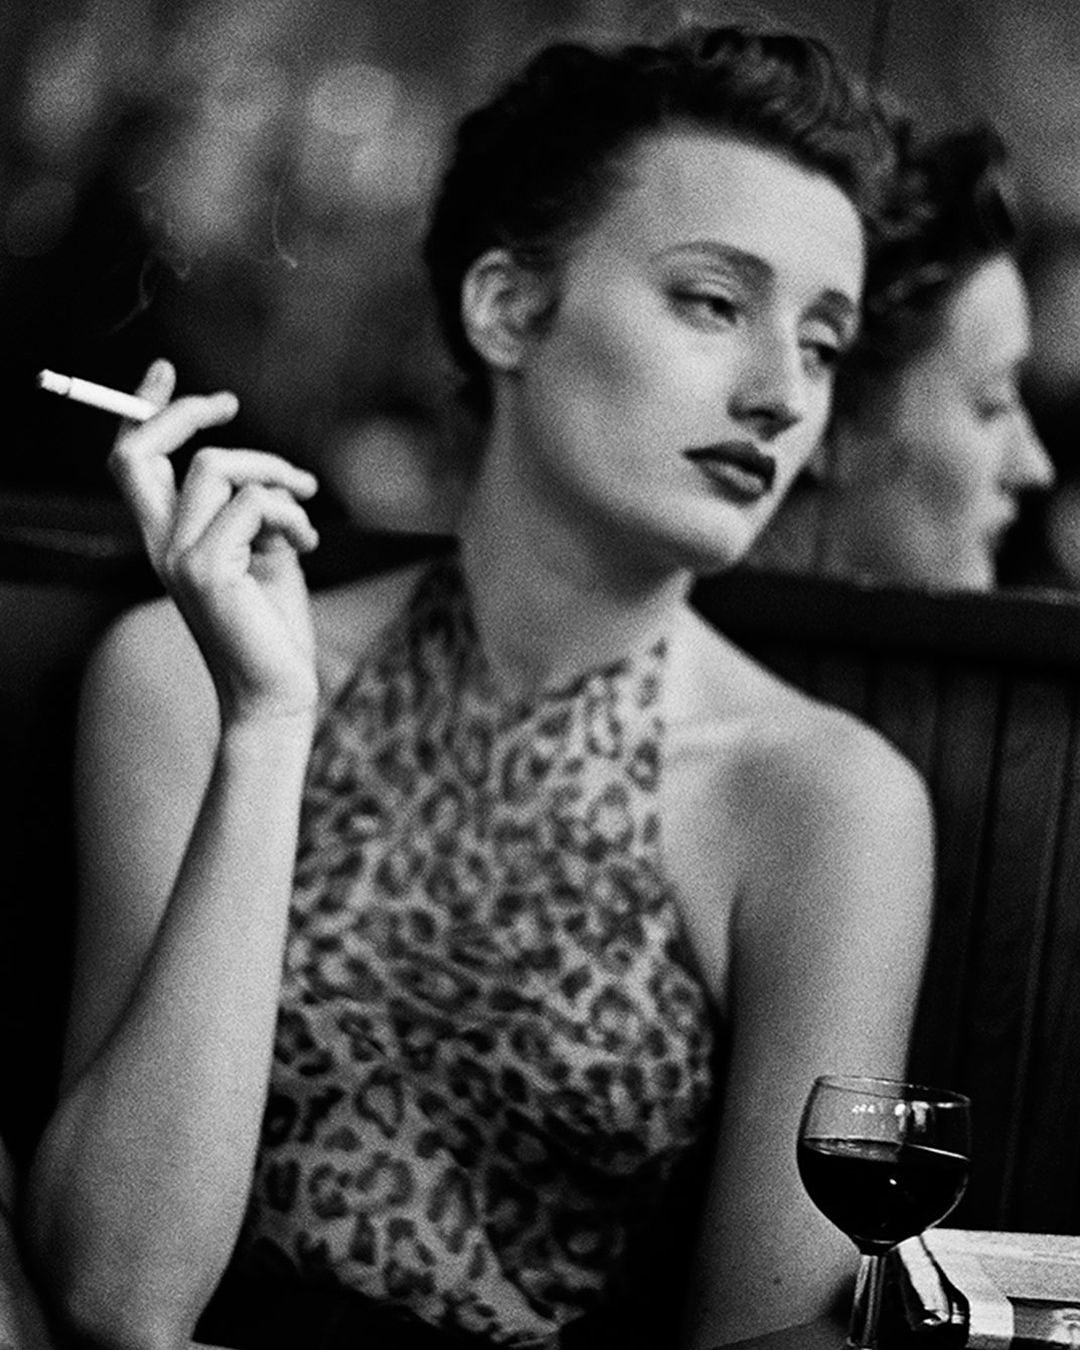 Marie sophie wilson for vogue france hotel du nord paris 1988 photographed by peter lindbergh